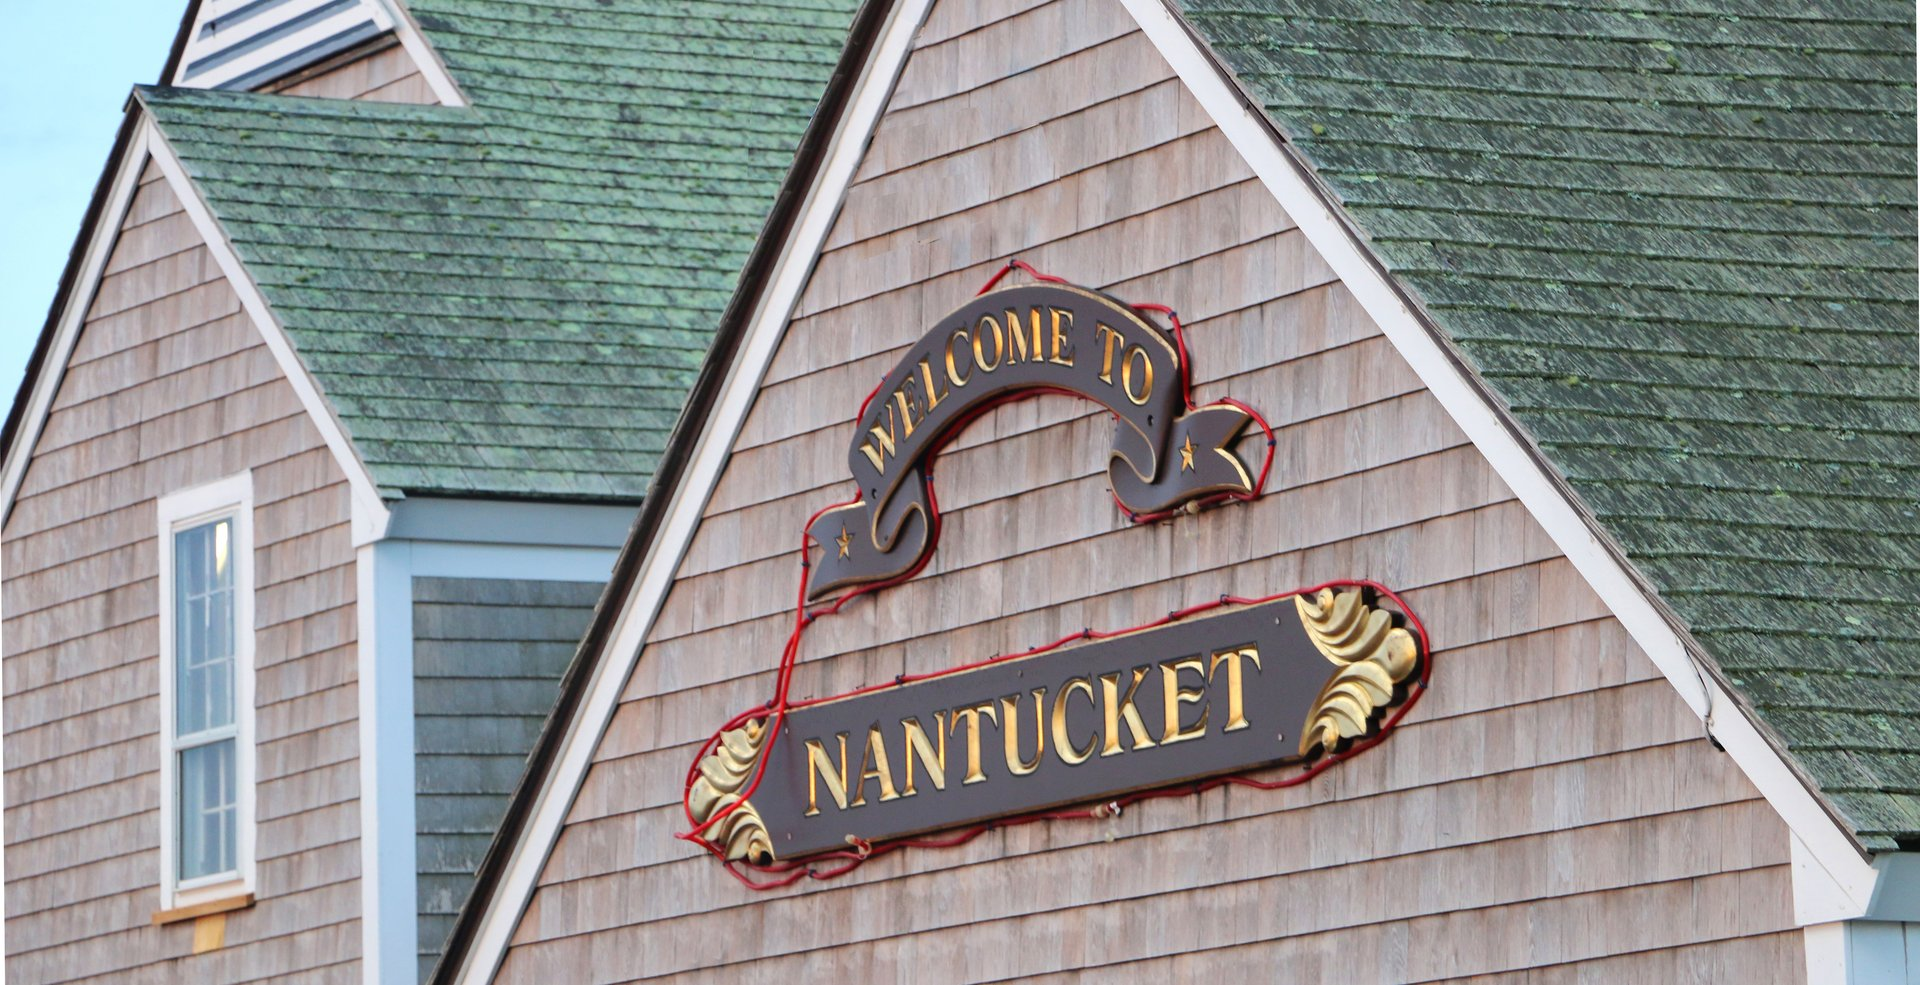 Nantucket Steamship Authority